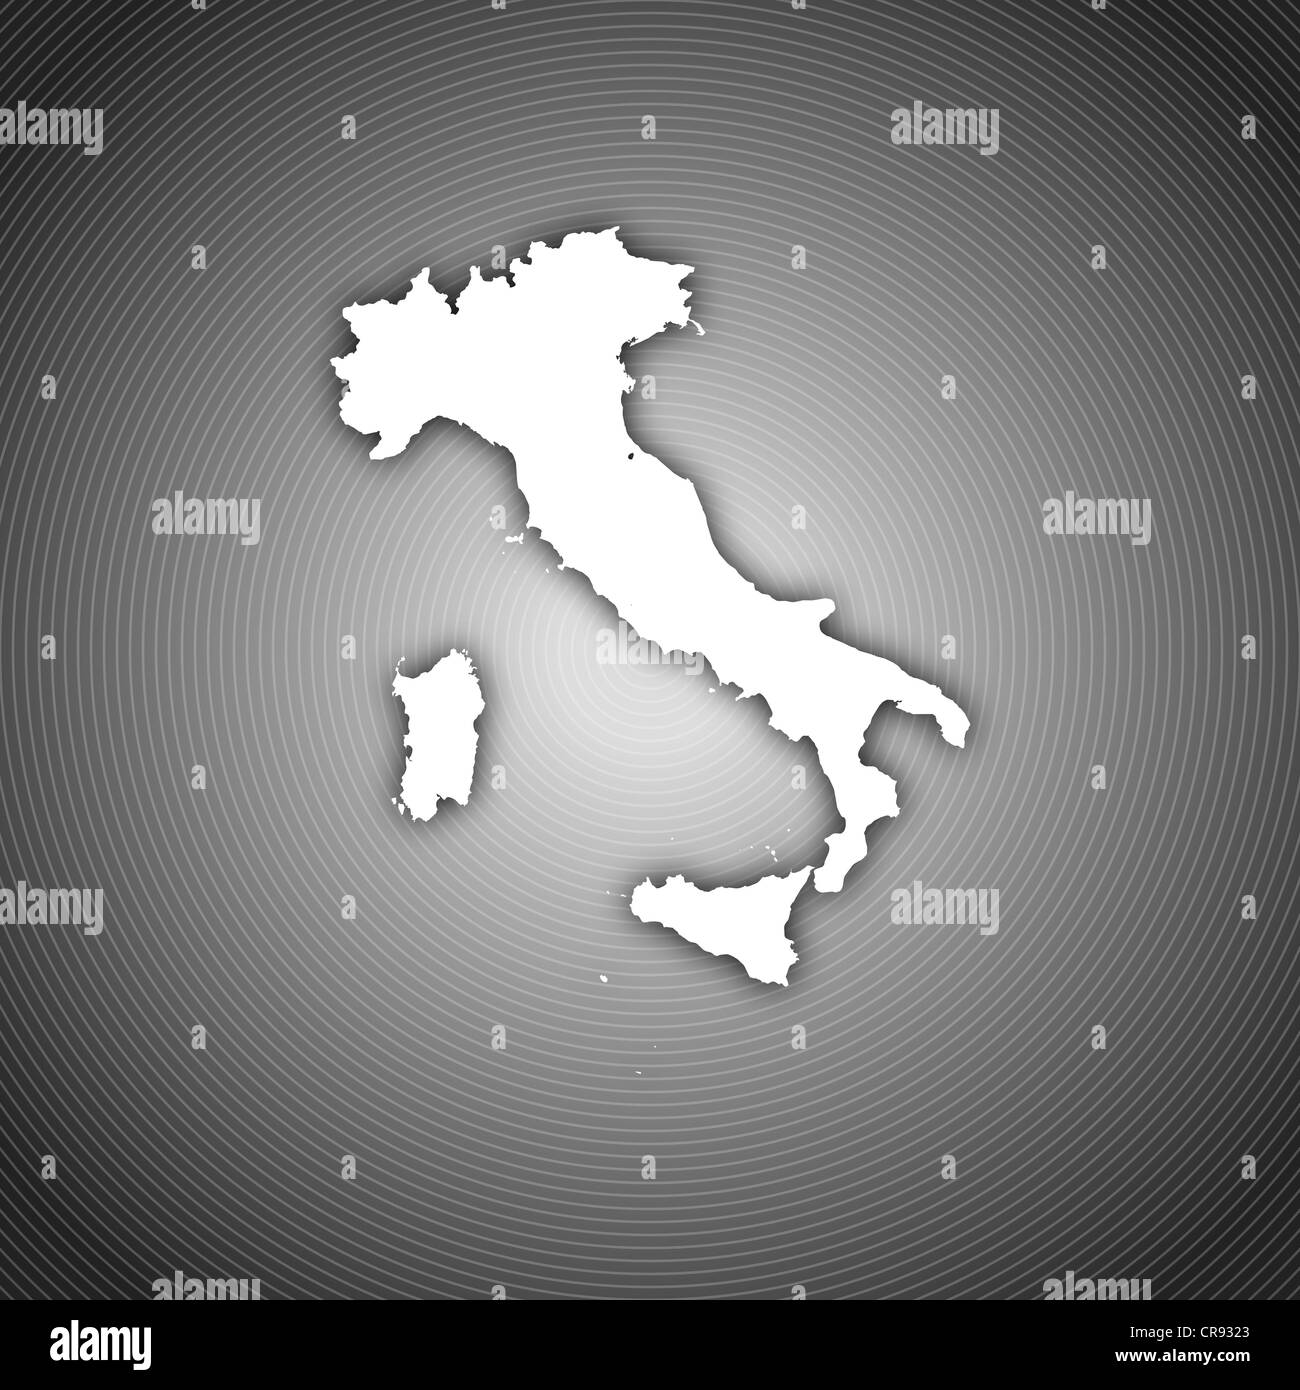 Political map of Italy with the several regions Stock Photo ... on black and white venice italy, black and white italy map regions, black and white printable map of greece,